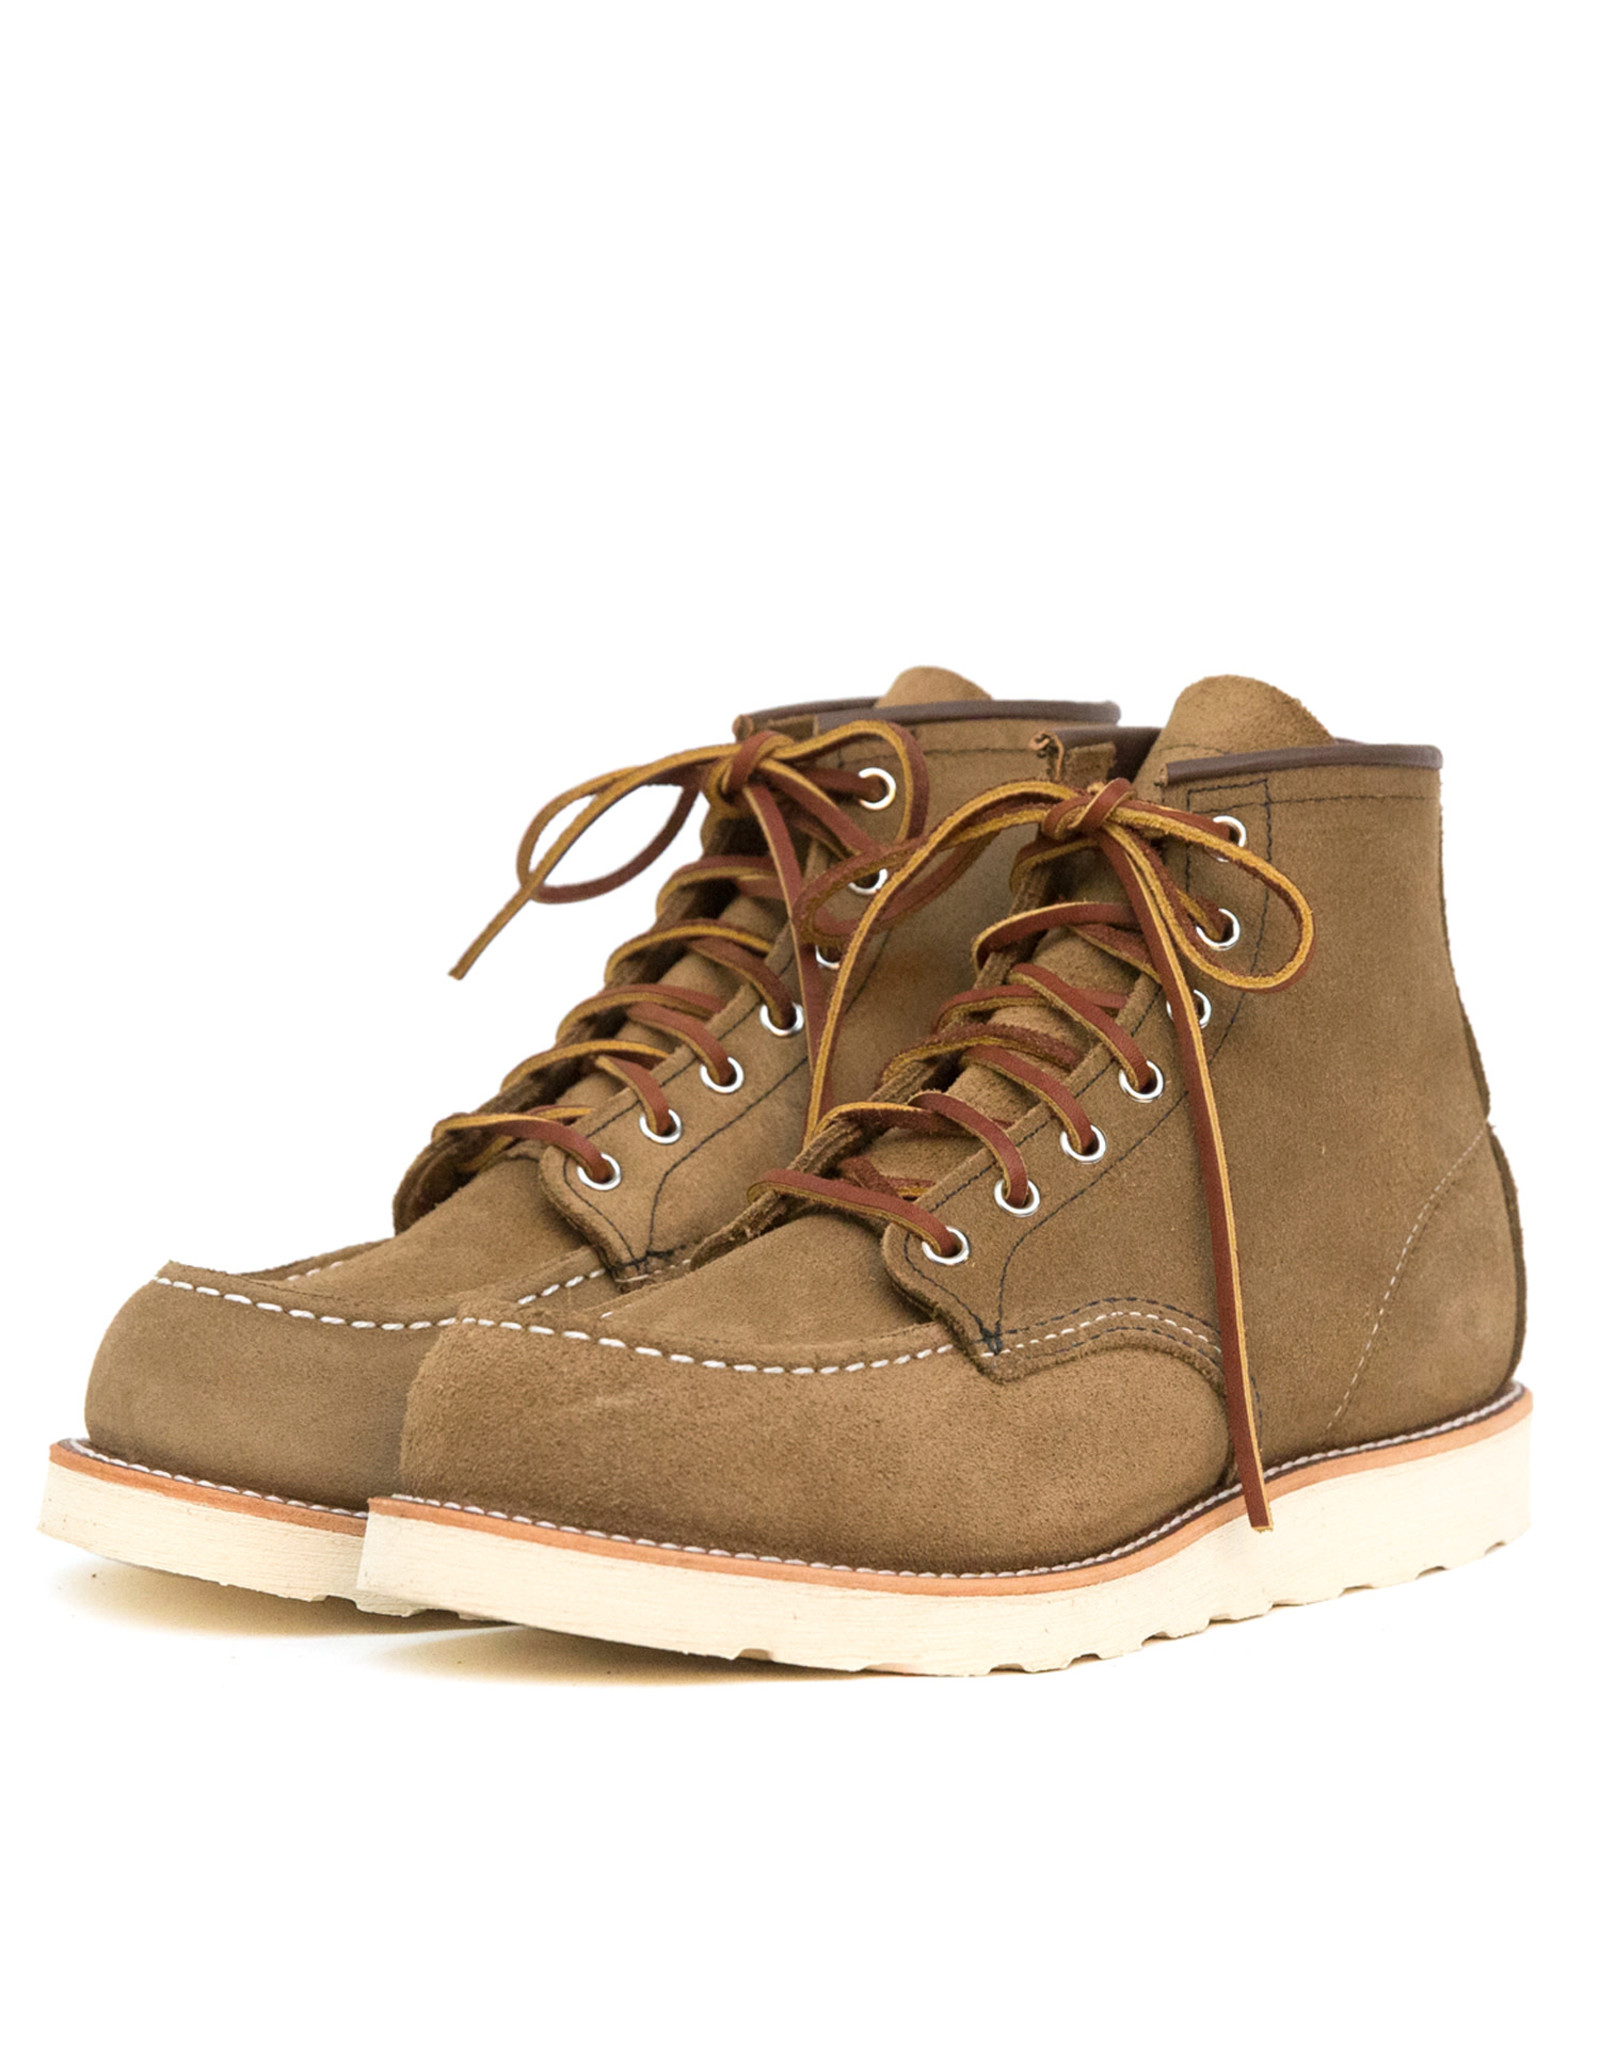 Red Wing Shoes 8881 Classic Moc Toe